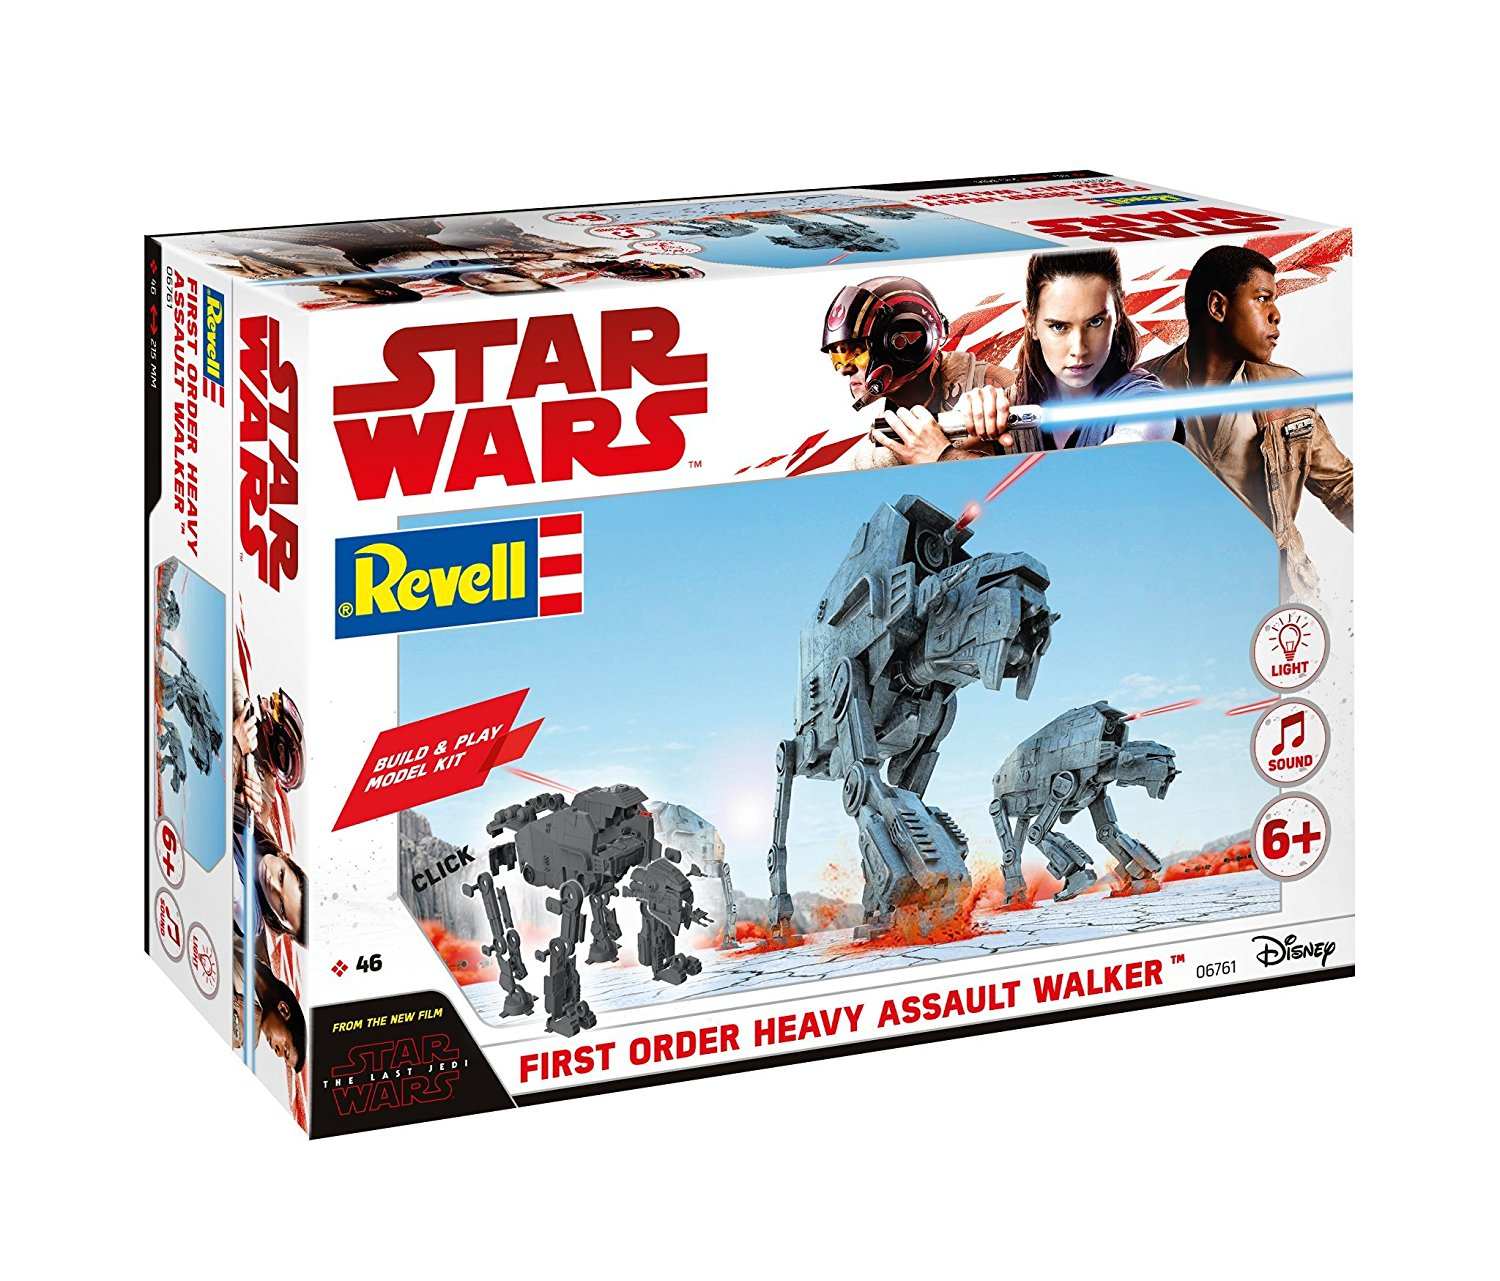 TLJ Build & Play First Order Heavy Assault Walker Sound & Light Up Model Kit 1